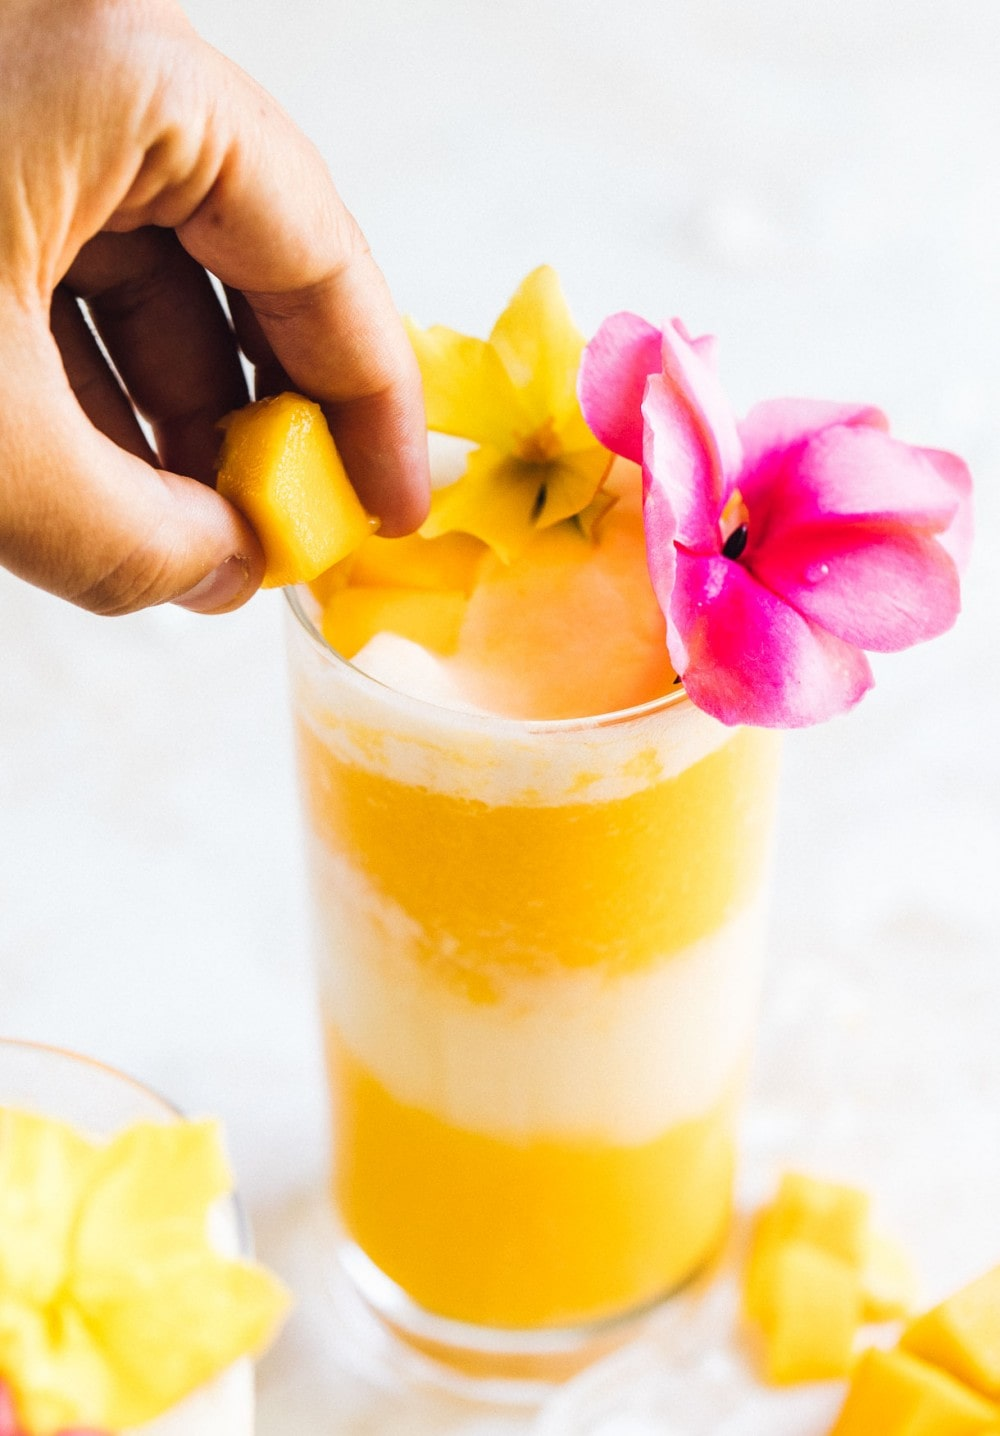 putting a mango cube onto a glass with a mango cocktail inside the glass. pink and yellow flowers are used as a garnish.